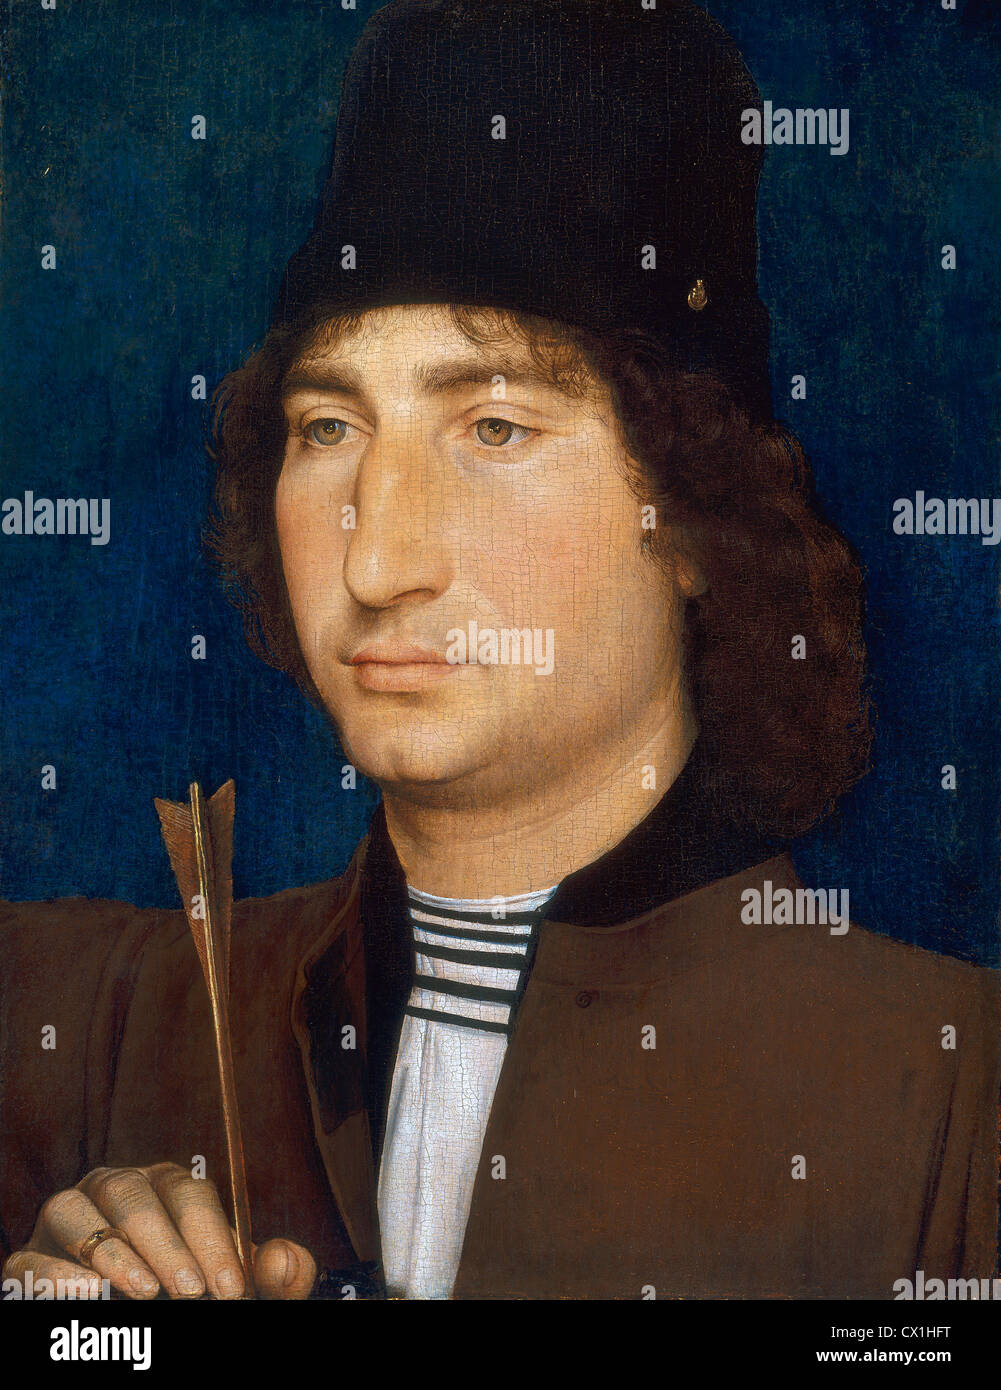 Hans Memling, Portrait of a Man with an Arrow, Netherlandish, active c. 1465 - 1494, c. 1470/1475, oil on panel - Stock Image